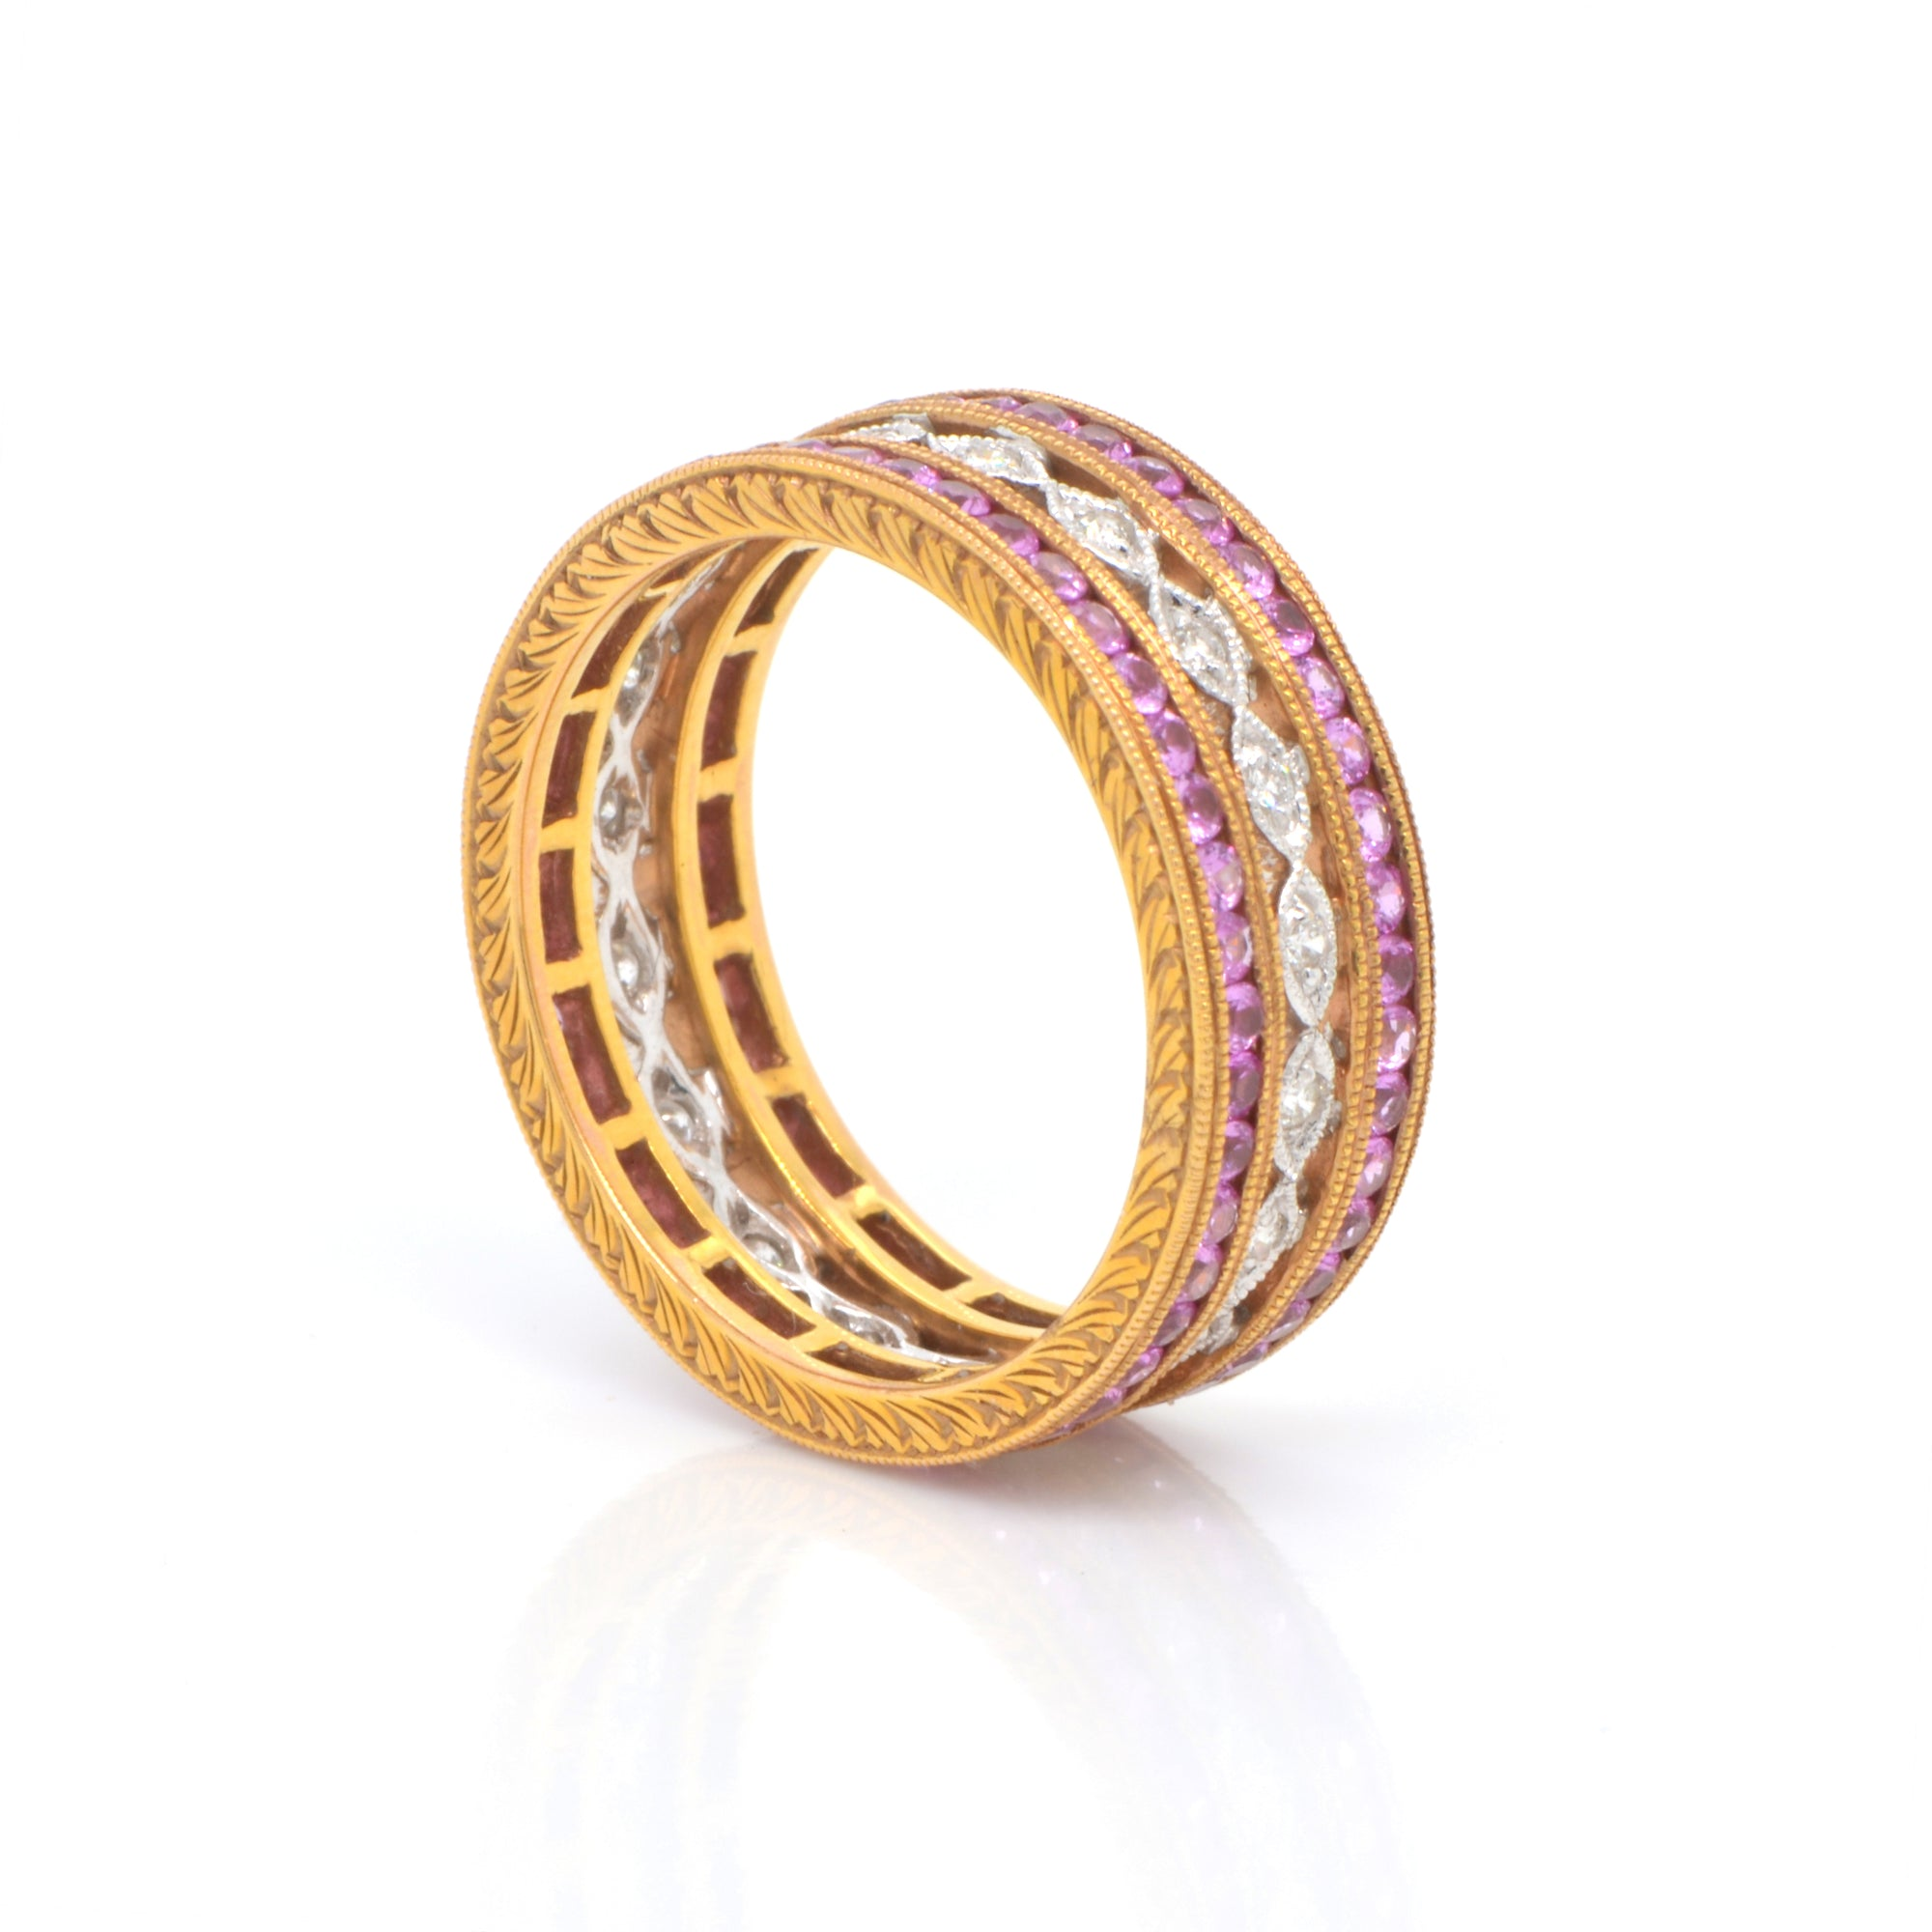 18K rose and white gold eternity band featuring rows of pink sapphires (1.35ctw) in rose gold, and round brilliant diamonds (0.14ctw) on a white gold band in a full eternity design.